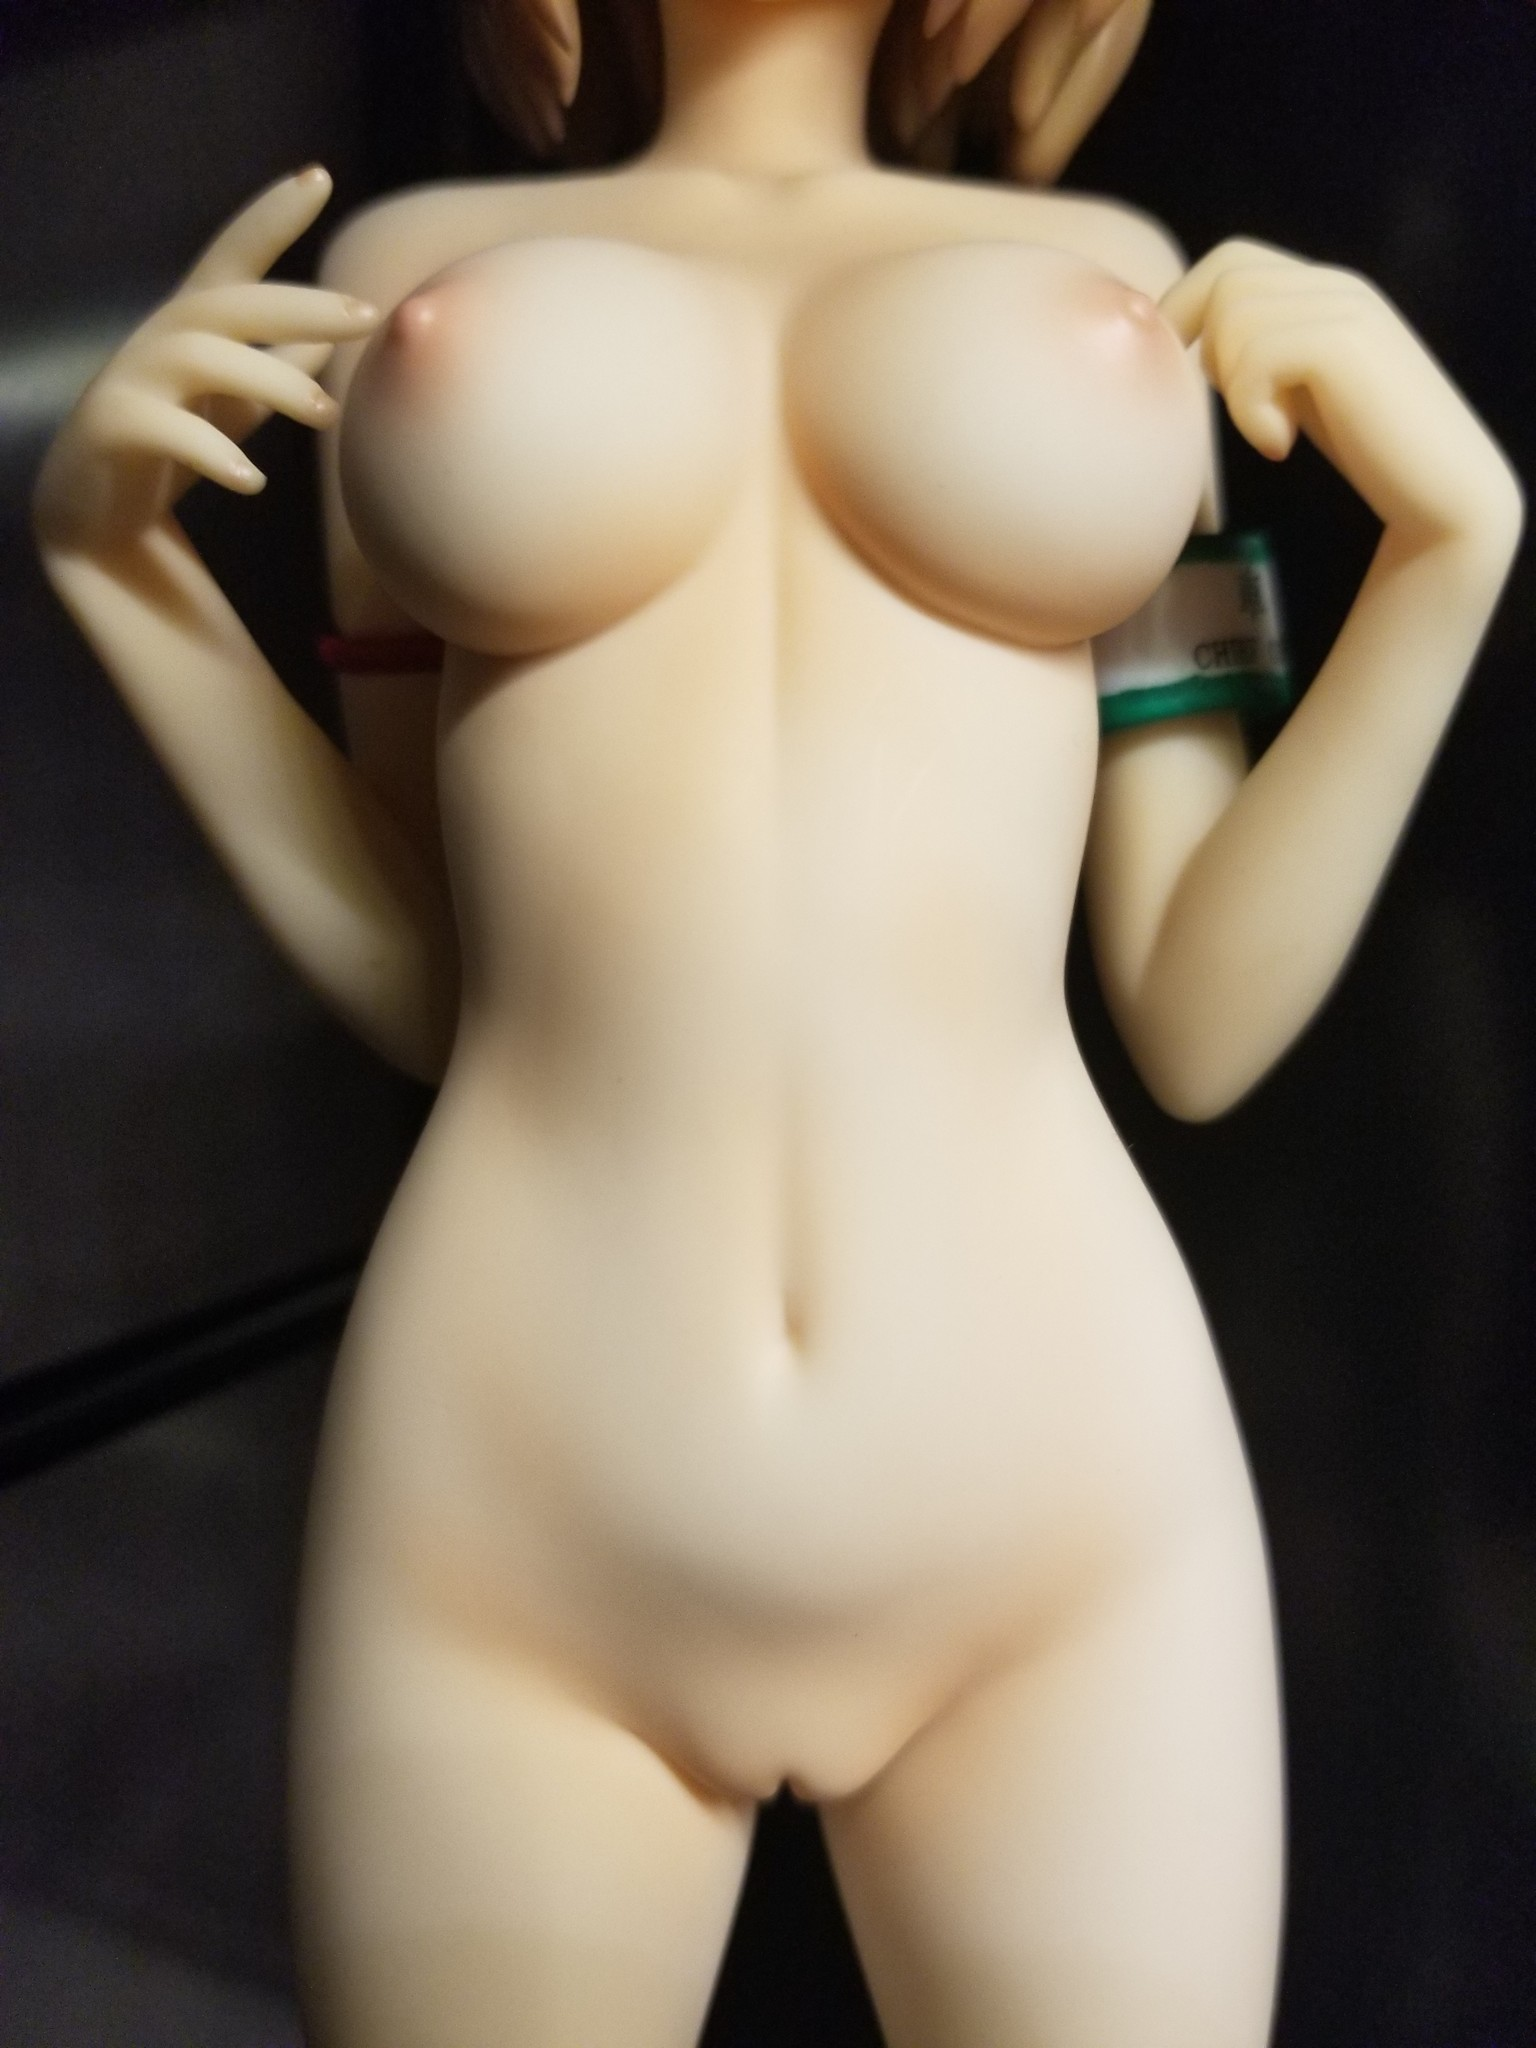 https://static.myfigurecollection.net/upload/pictures/2019/09/26/2304457.jpeg